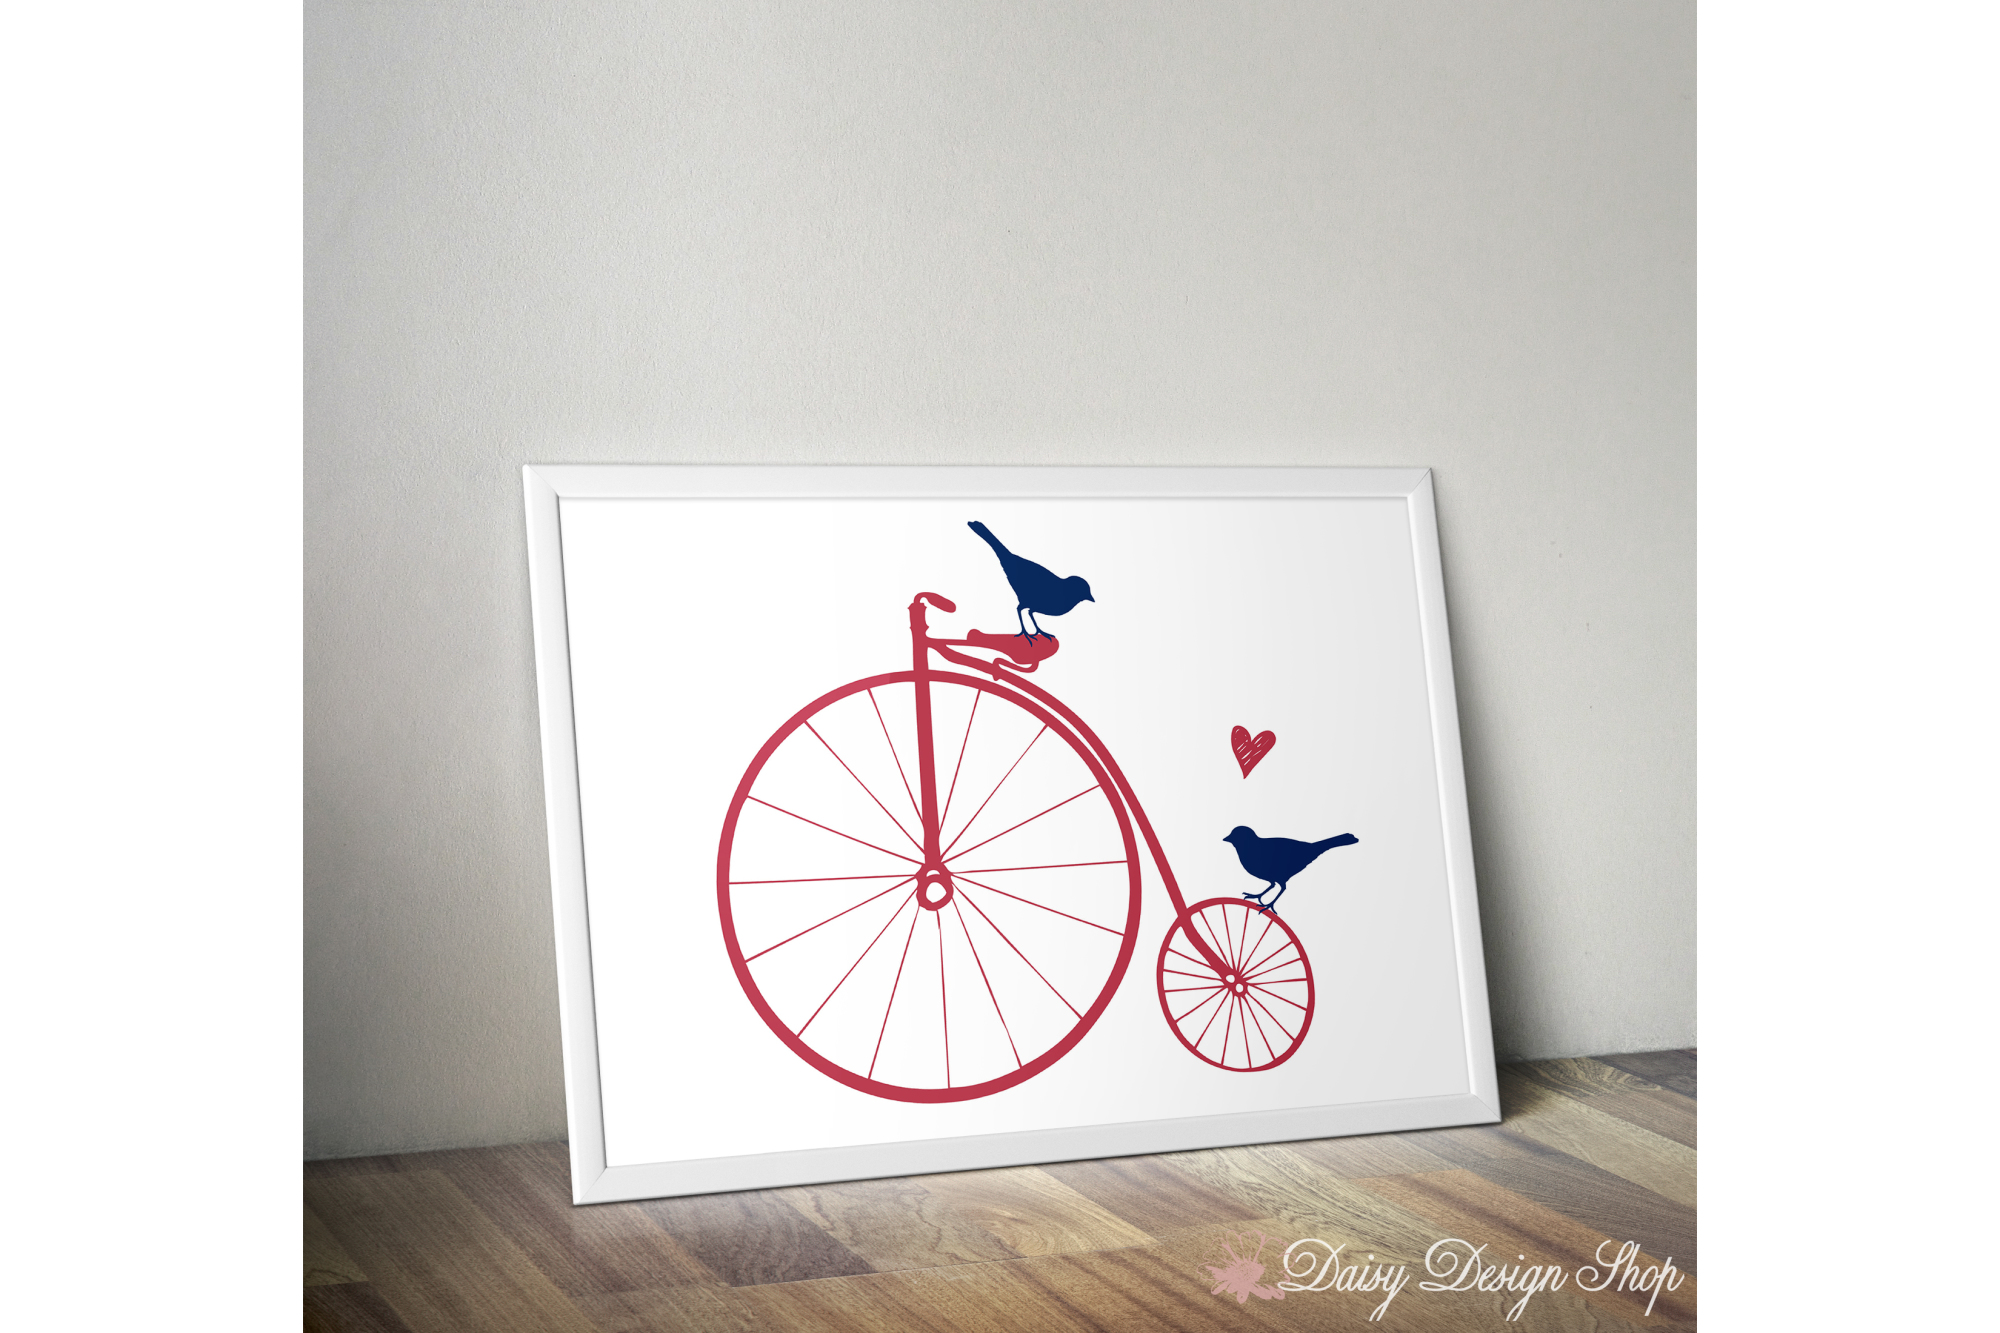 Art Print - Big Wheel Bicycle with Birds and Heart - 8x10 Printable example image 1